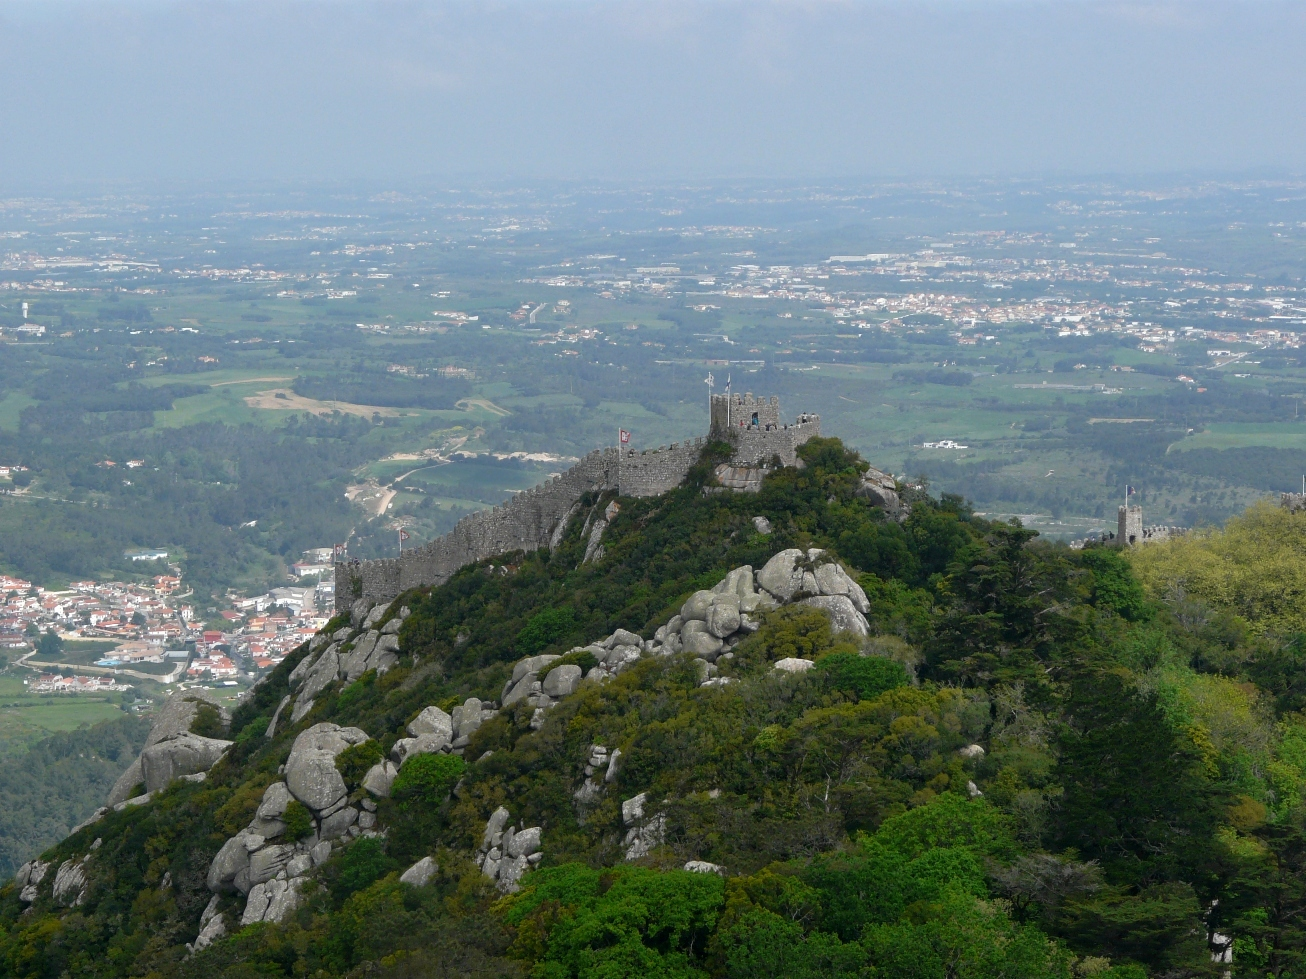 Picture 1, Castelo dos Mouros, Sintra, Portugal